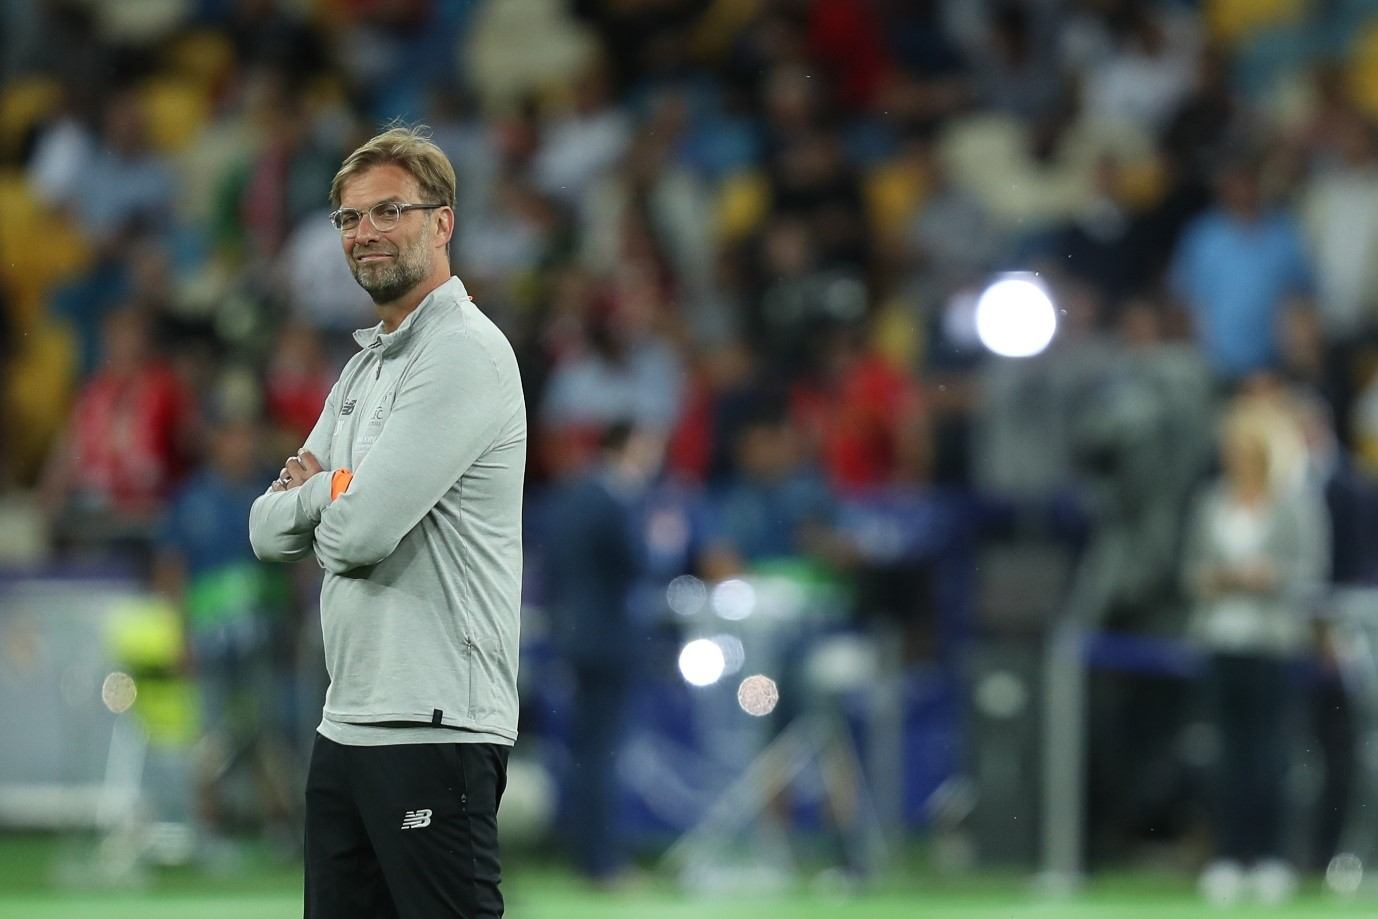 The postponement of fixtures because of the outbreak does not take away from Liverpool's stellar performances in the earlier weeks and months of the season. They became a winning machine under Jürgen Klopp, turning draws into wins every time without fail. But the coronavirus crisis has amplified the winding down the Reds have shown in their performances – the lack of spark and fire which is such an important part of their footballing identity.